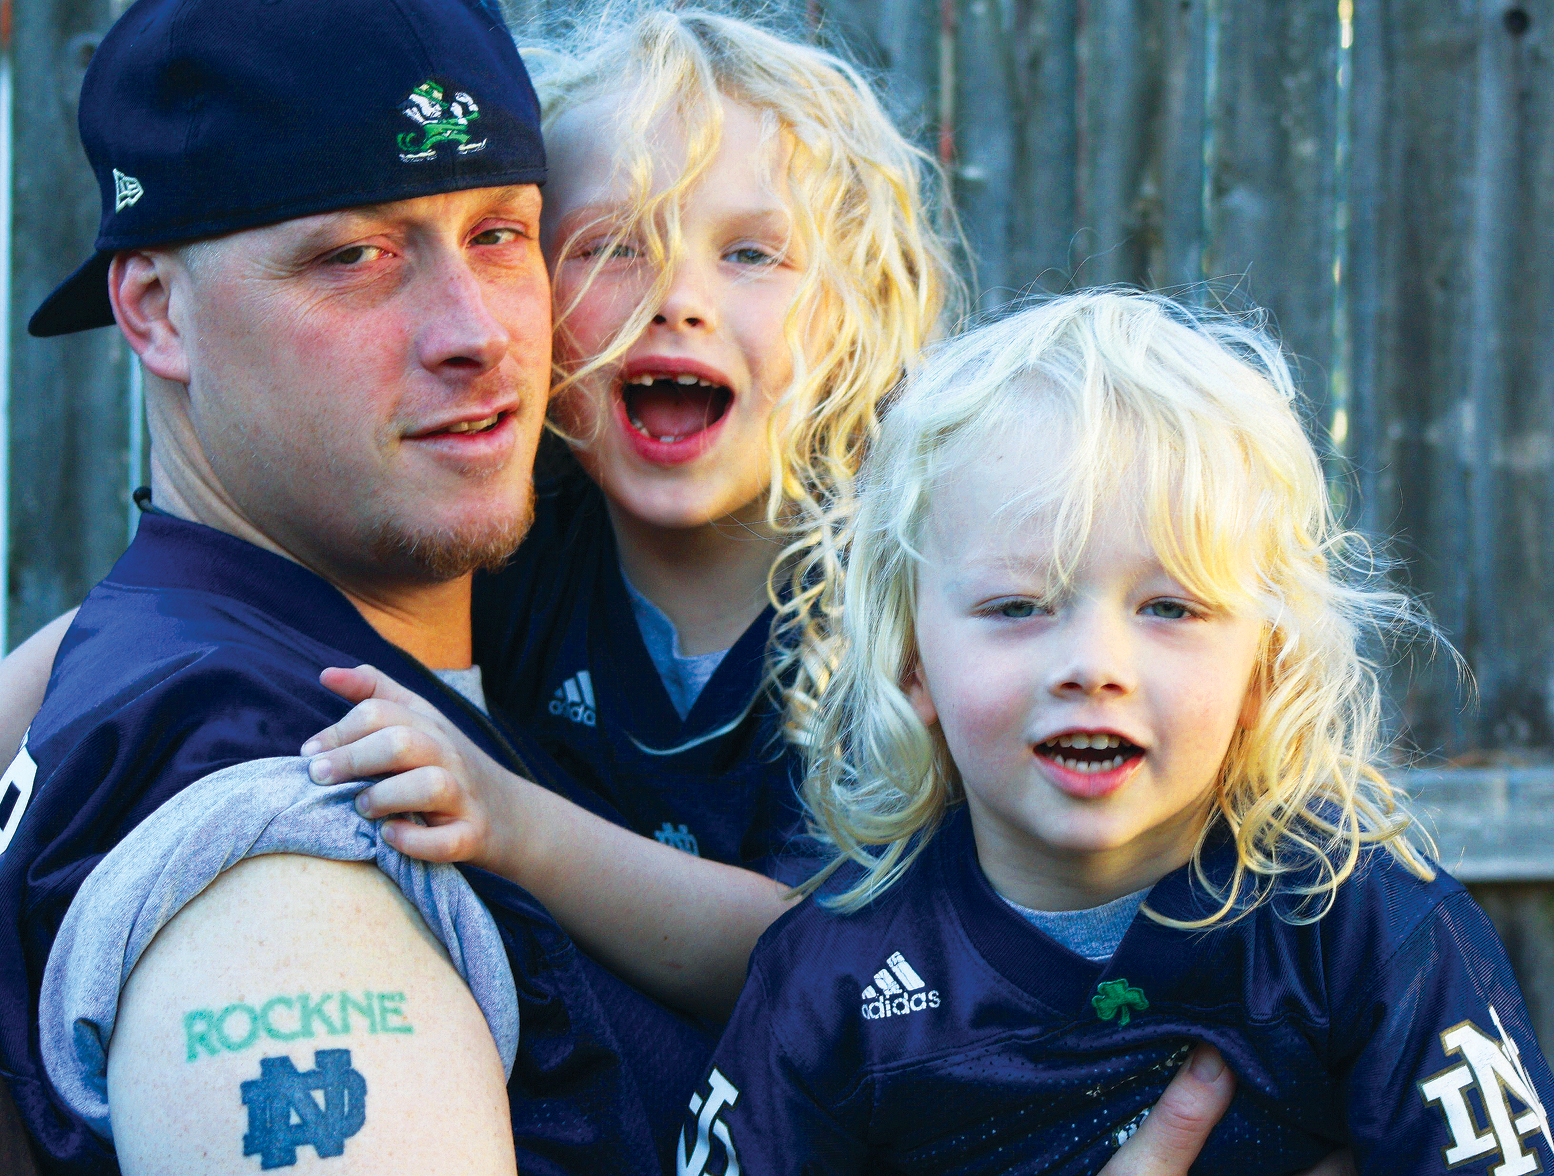 Fighting Irish superfan Billy DePuy and his children, Felicia Montana (as in Joe) and Lukas Rockne (as in Knute).